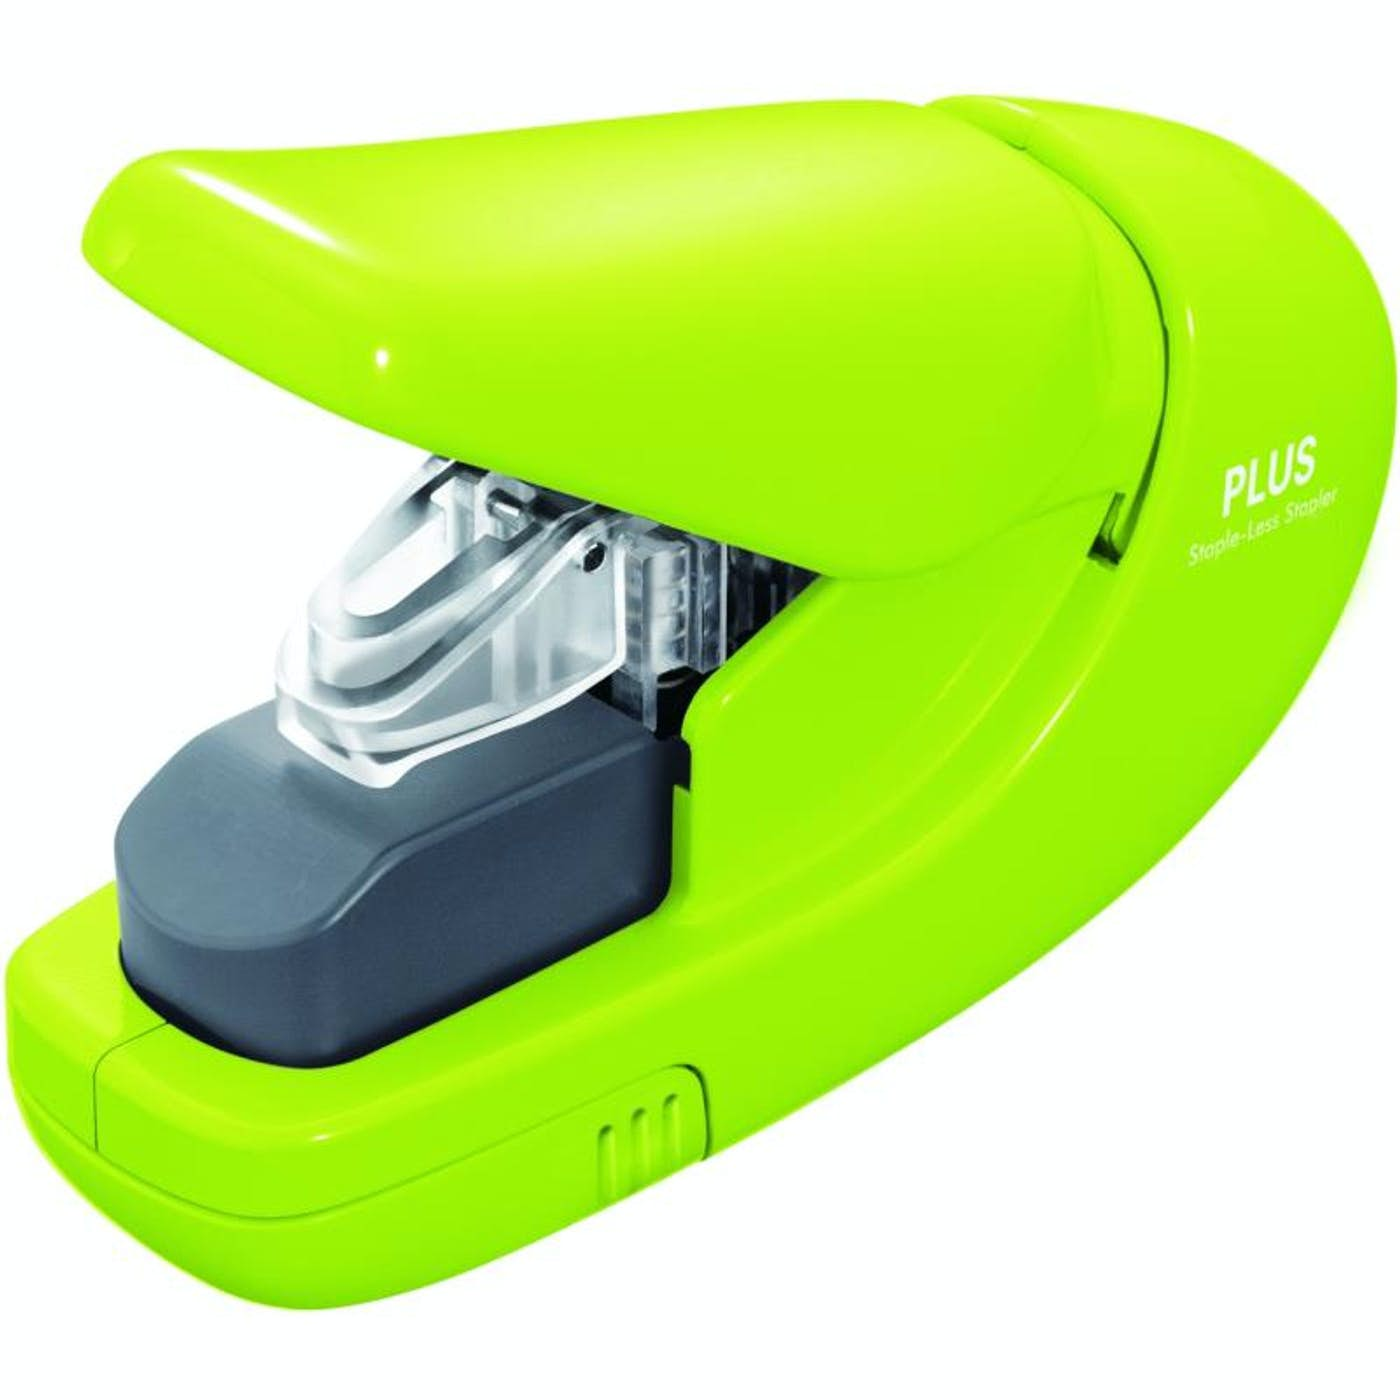 PLUS STAPLE-LESS STAPLER  (GREEN)